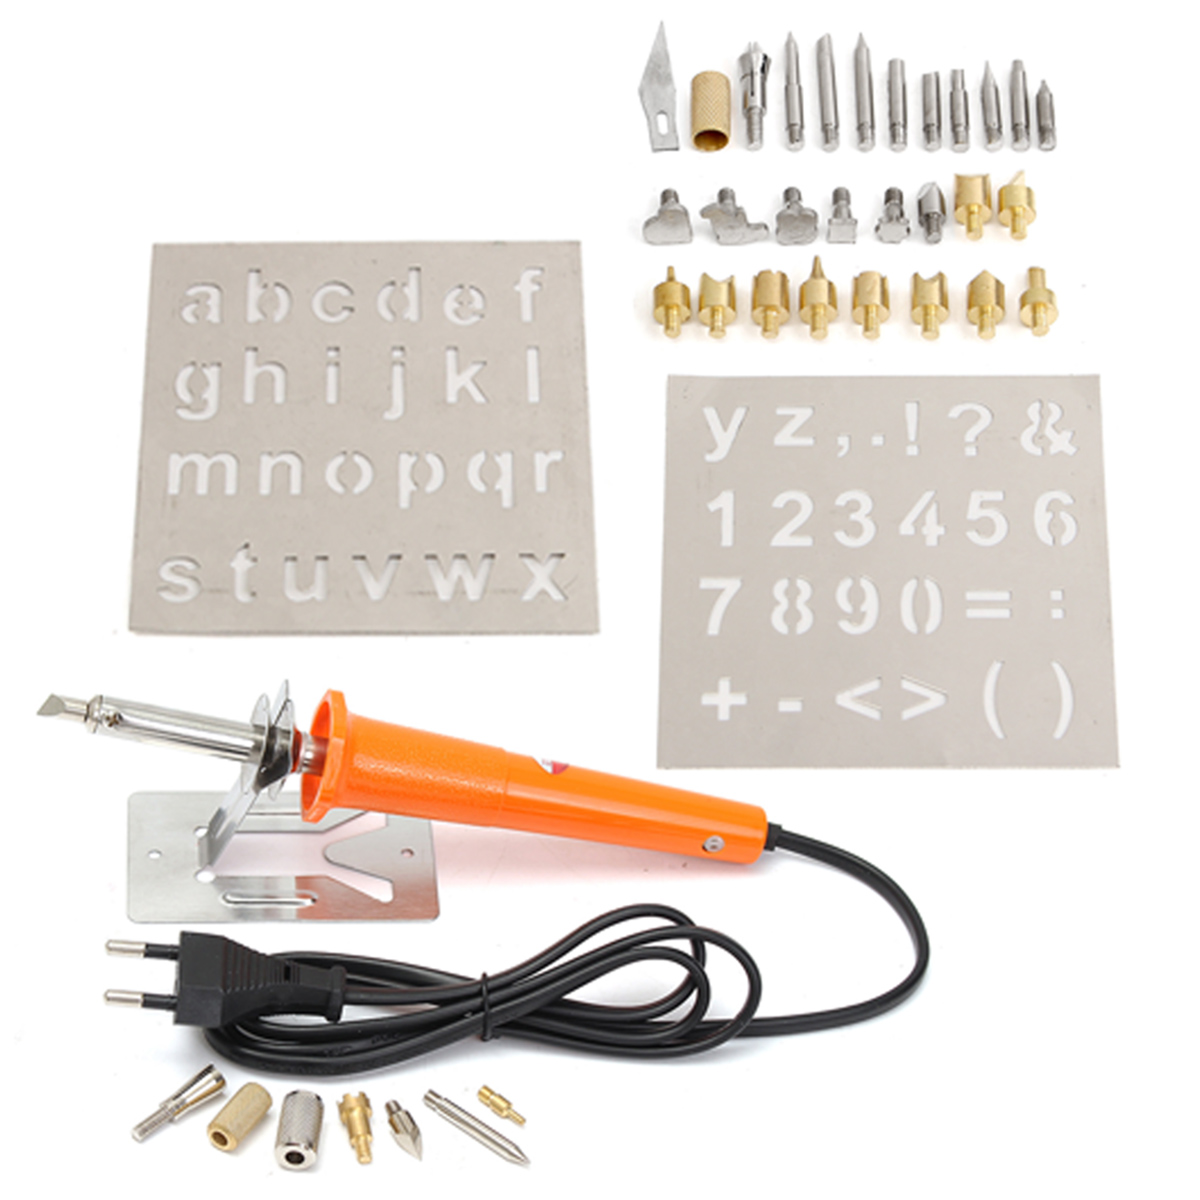 37Pcs 110V Wood Burning Pen with Extra Tips and Stencils Deluxe Craft and Hobby Kit